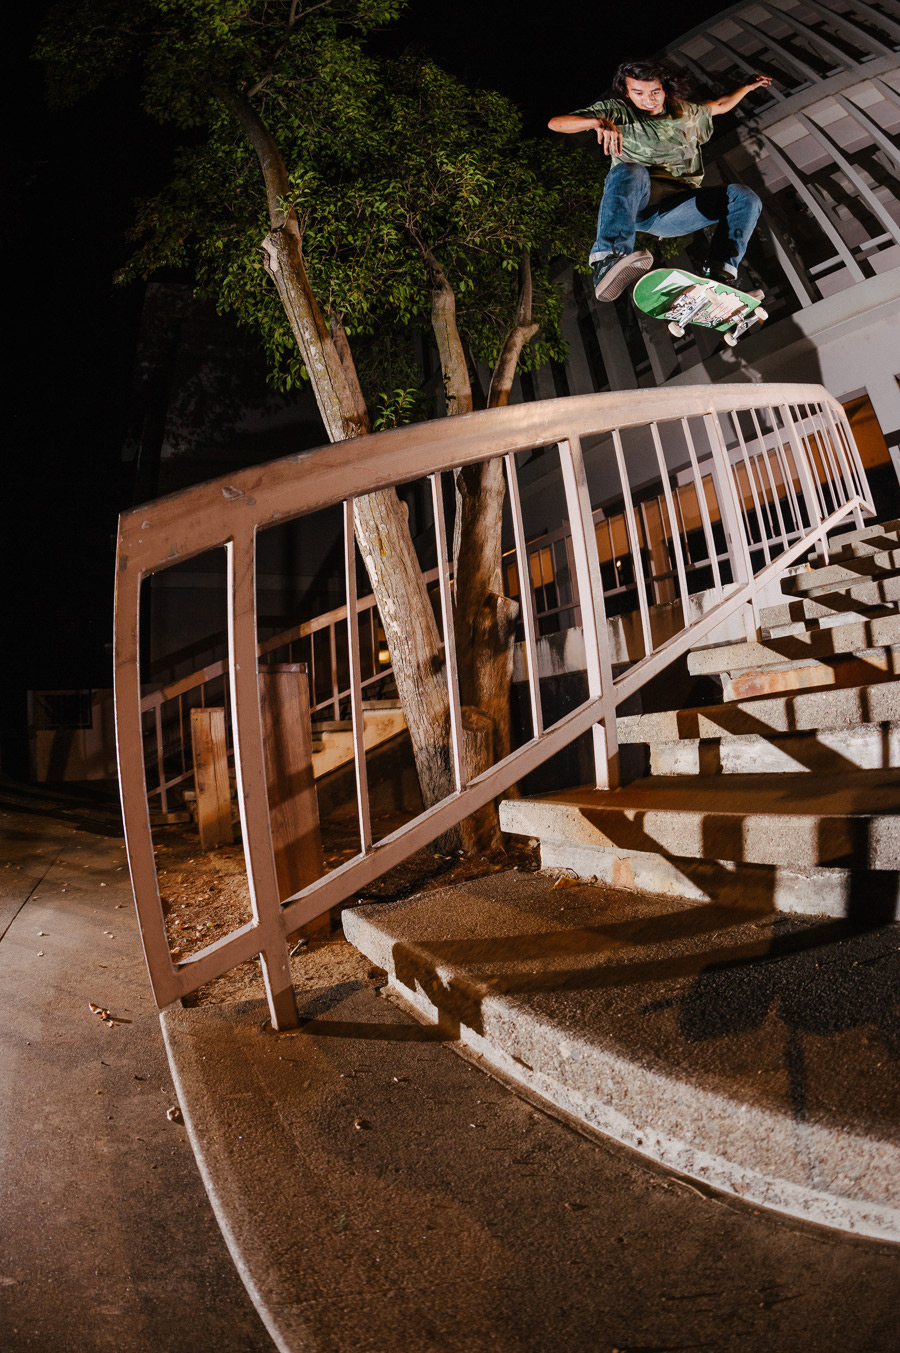 Jeremy Leabres - Kickflip 50-50 / photo: mehring